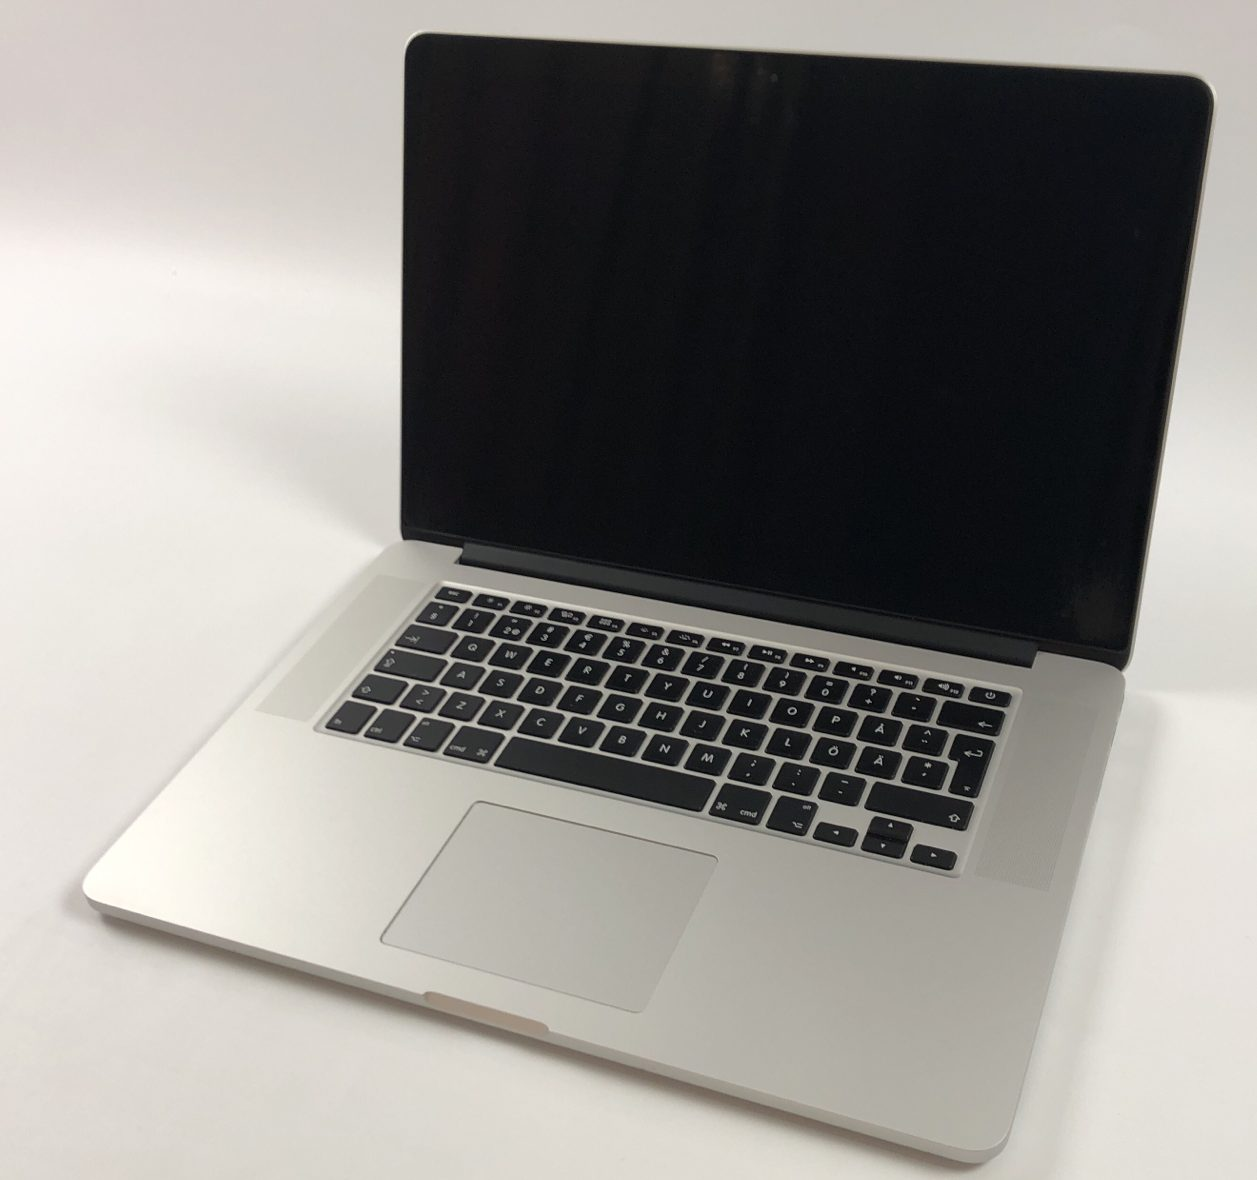 "MacBook Pro Retina 15"" Mid 2015 (Intel Quad-Core i7 2.8 GHz 16 GB RAM 512 GB SSD), Intel Quad-Core i7 2.8 GHz, 16 GB RAM, 512 GB SSD, imagen 1"